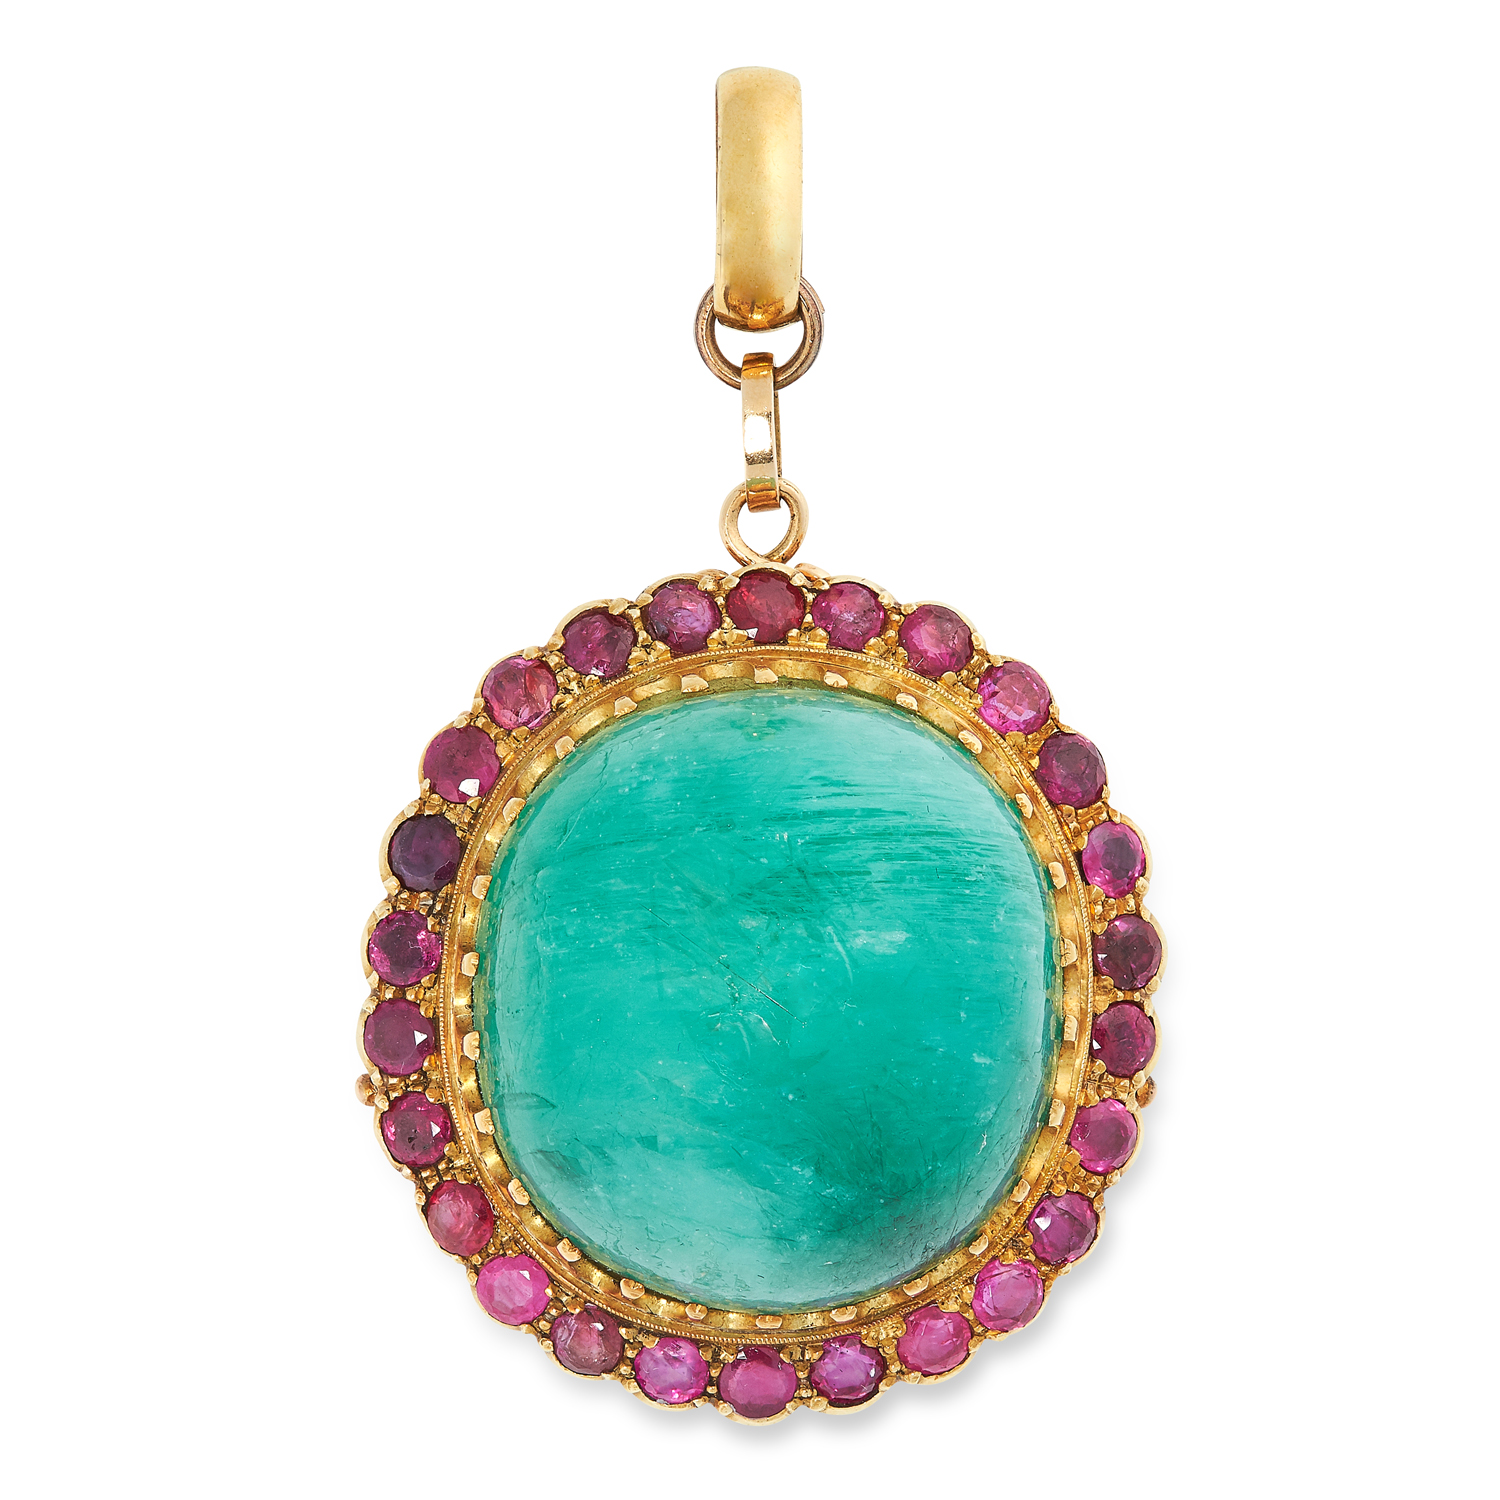 AN ANTIQUE EMERALD AND RUBY PENDANT in yellow gold, comprising of a cabochon cut emerald of 78.10